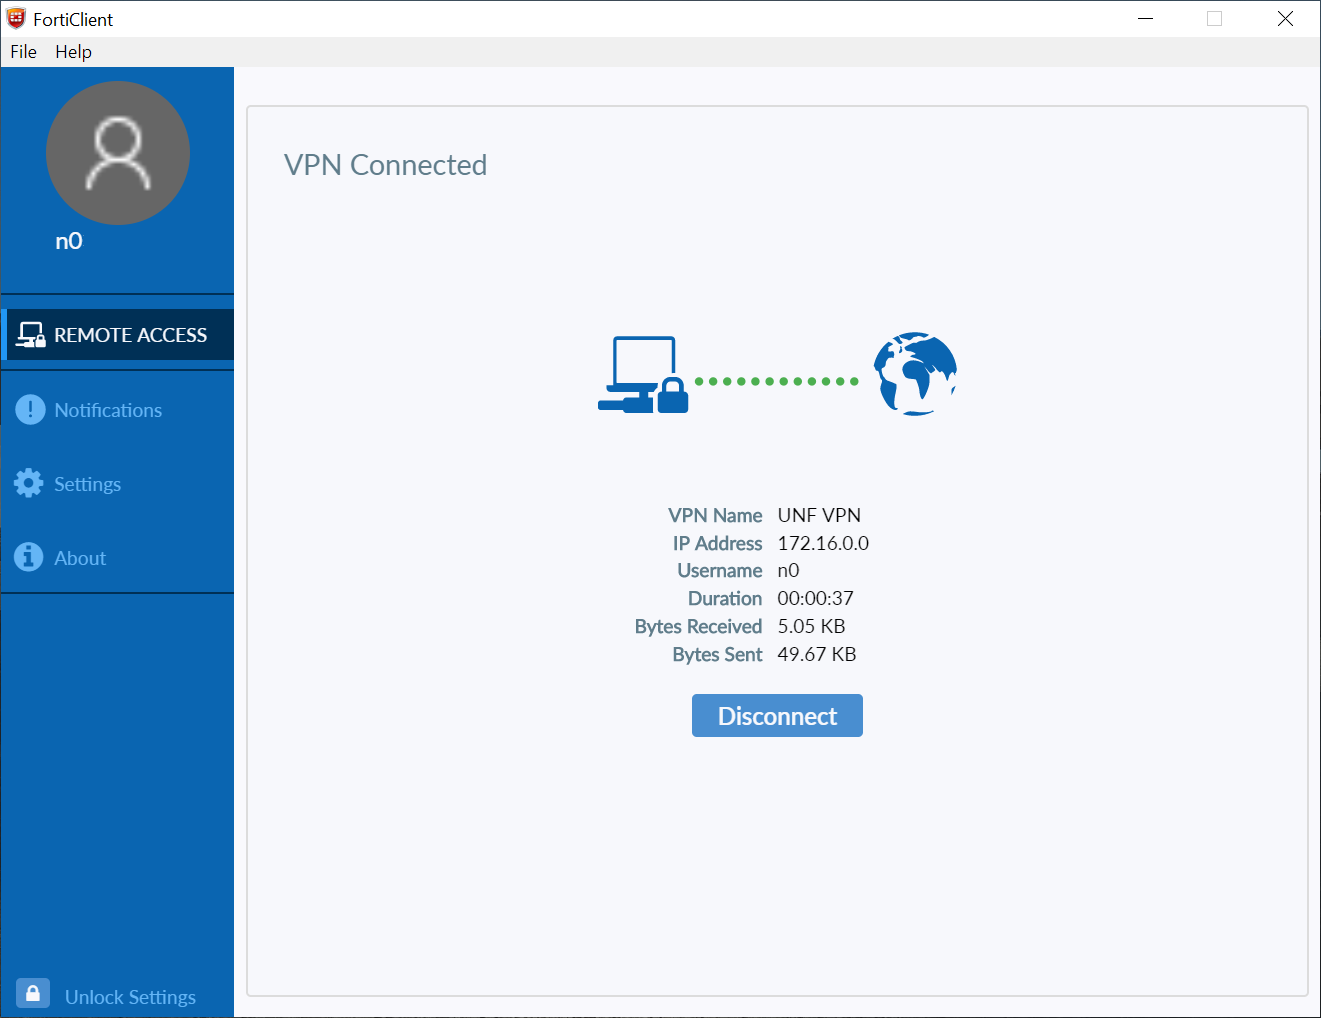 FortiClient VPN connected windows